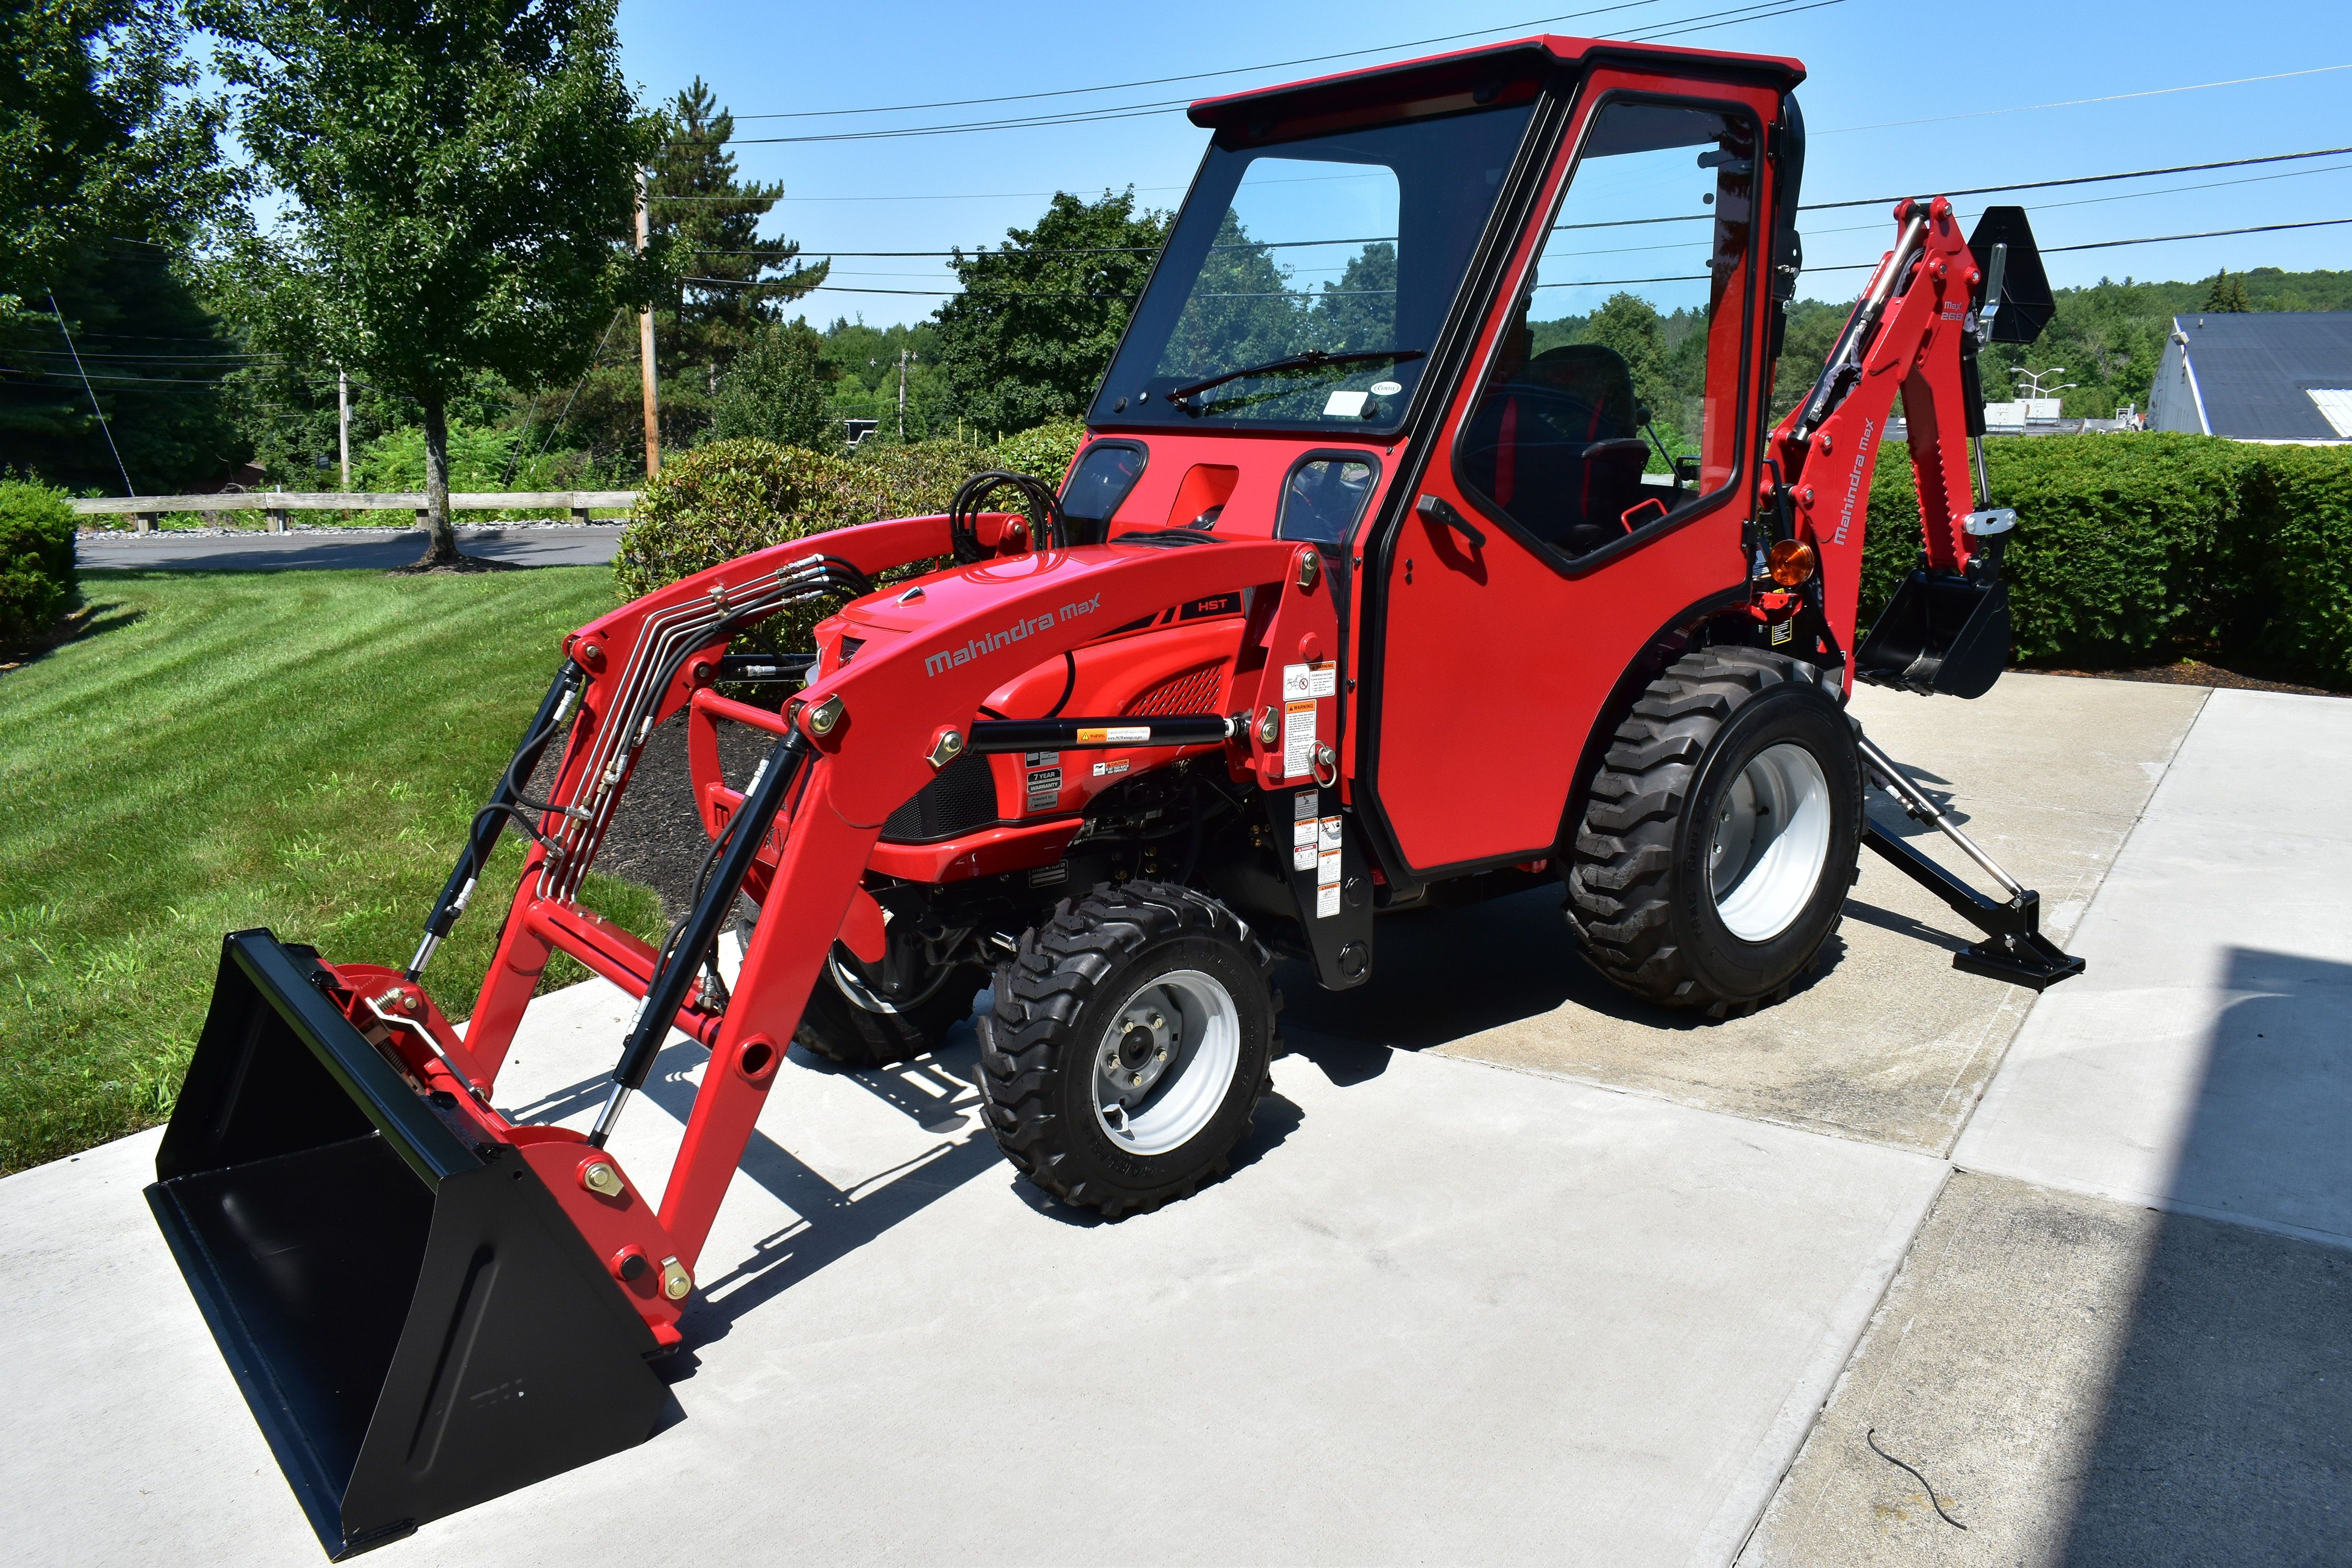 Mahindra Max 26 XLT Cab | Tractor Cabs | Tractor cabs